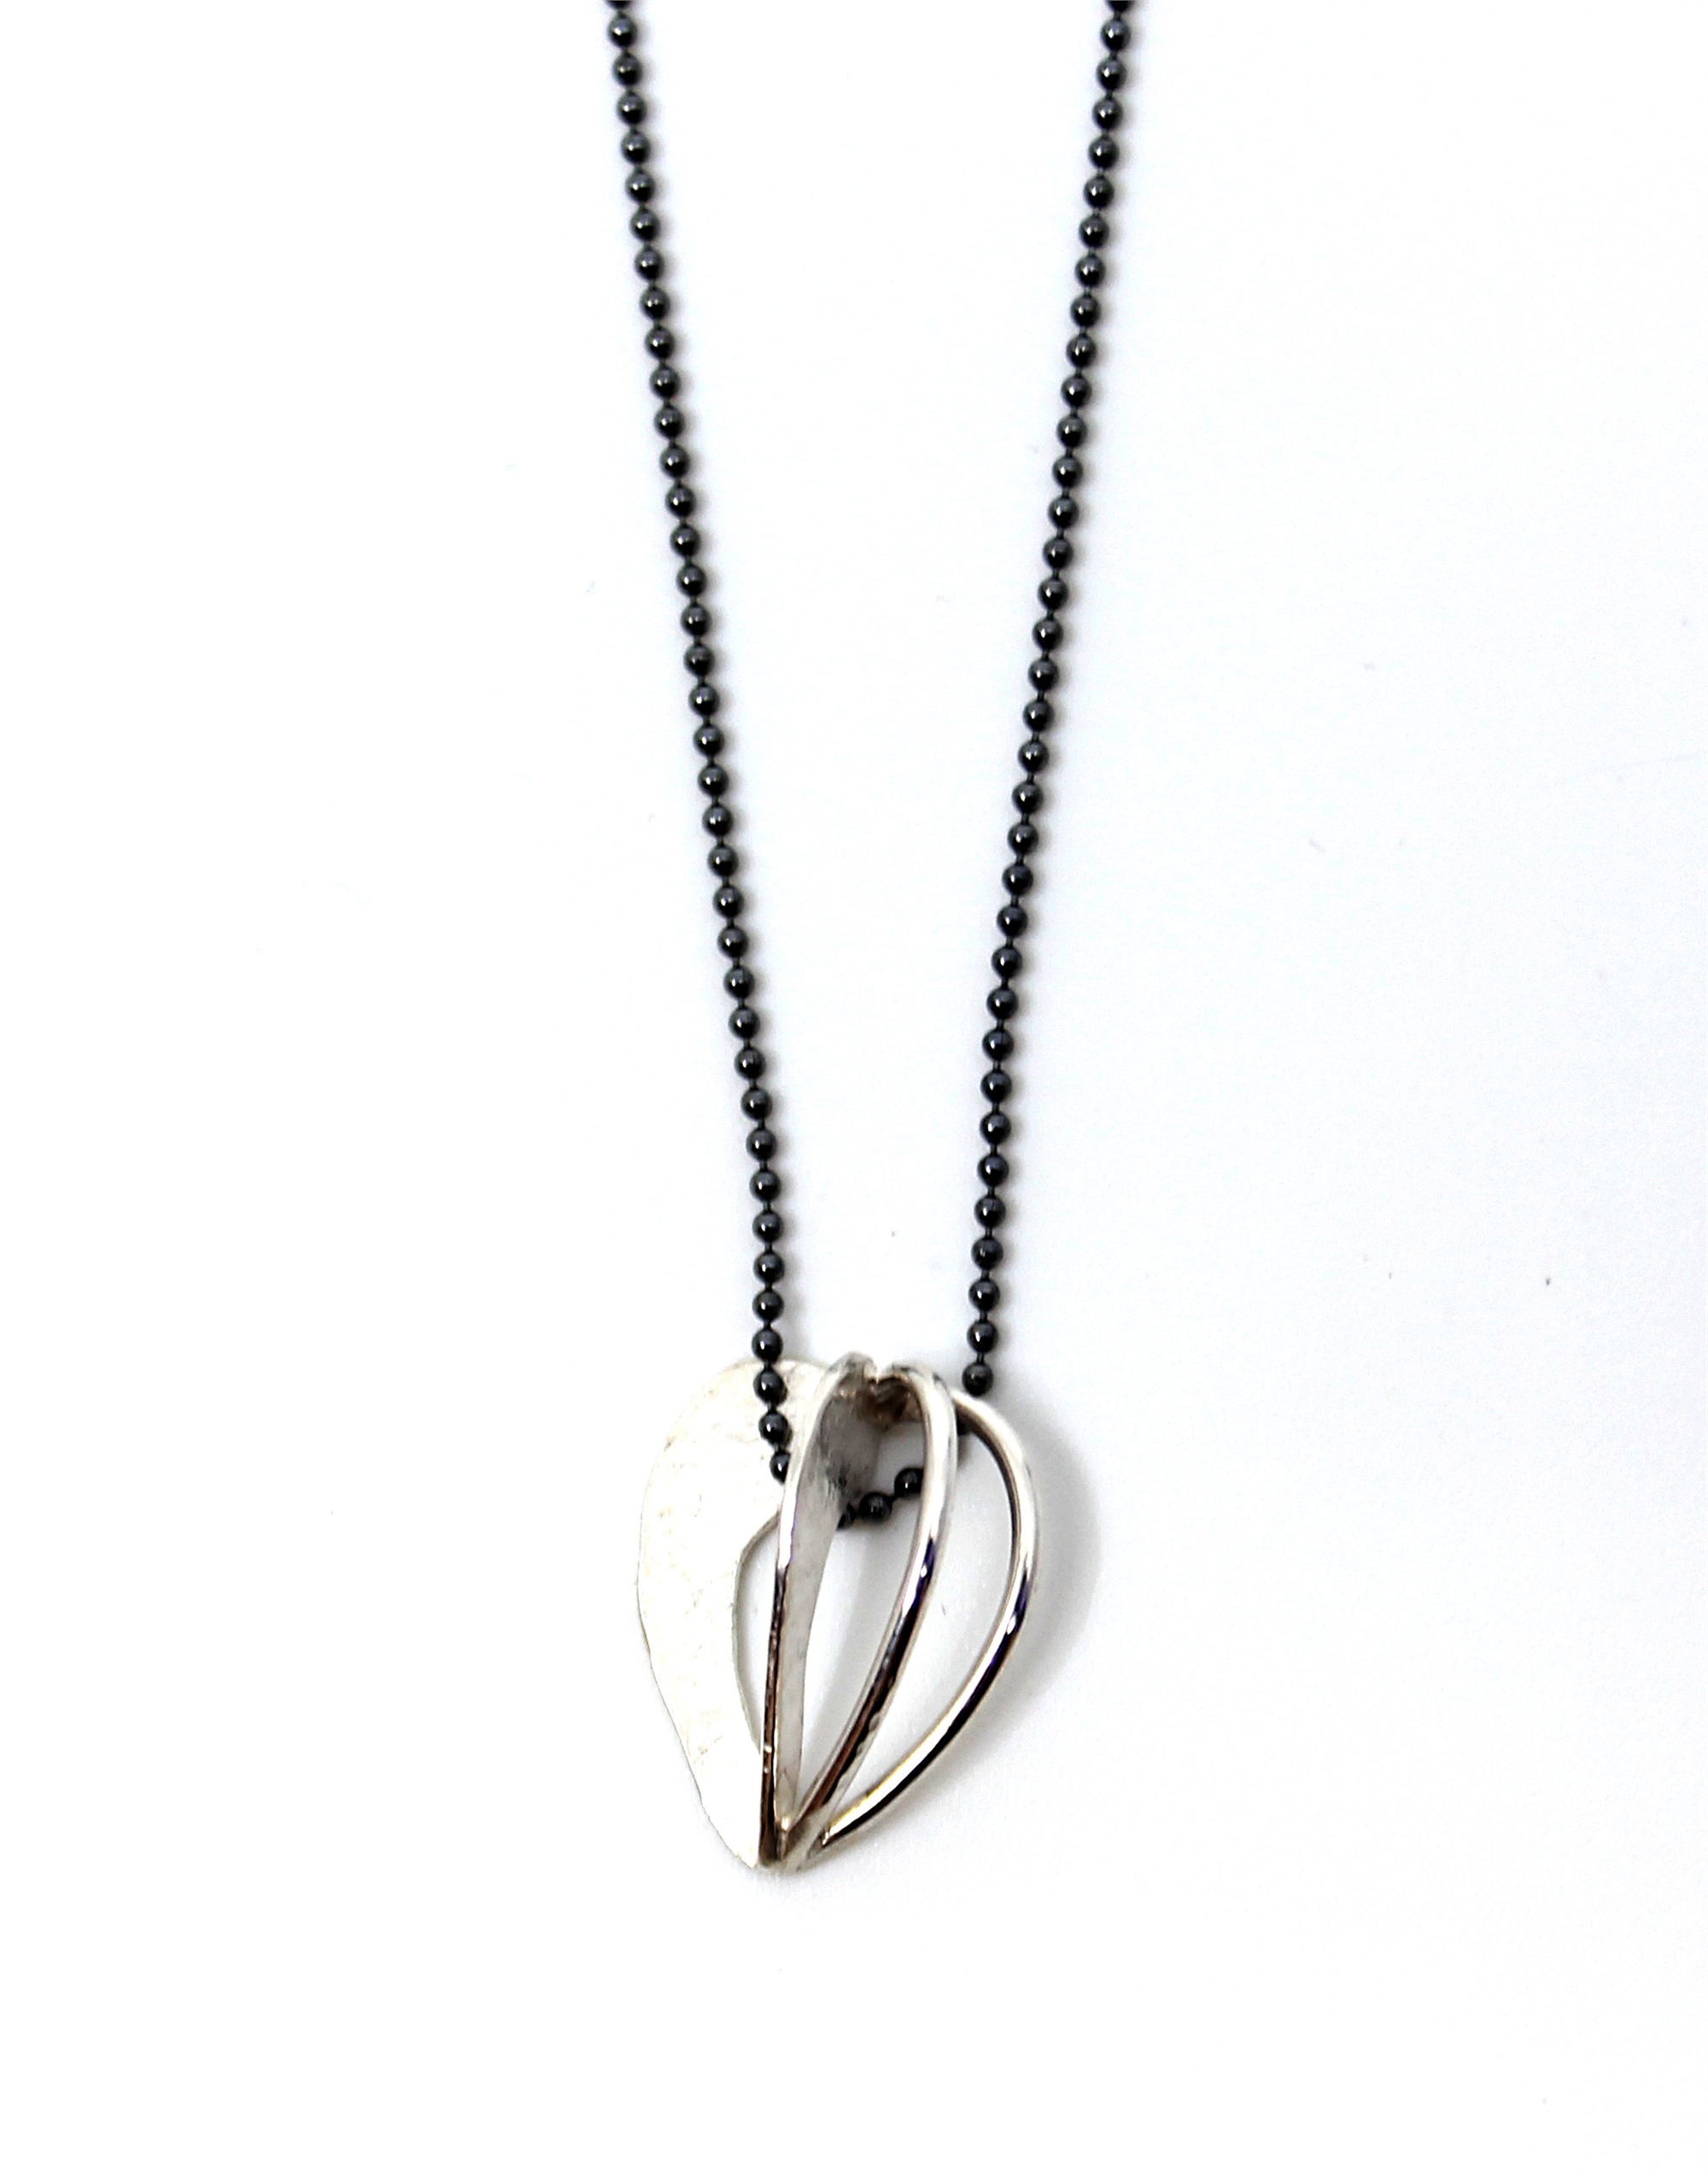 Small Moon Pod Necklace by Leia Zumbro